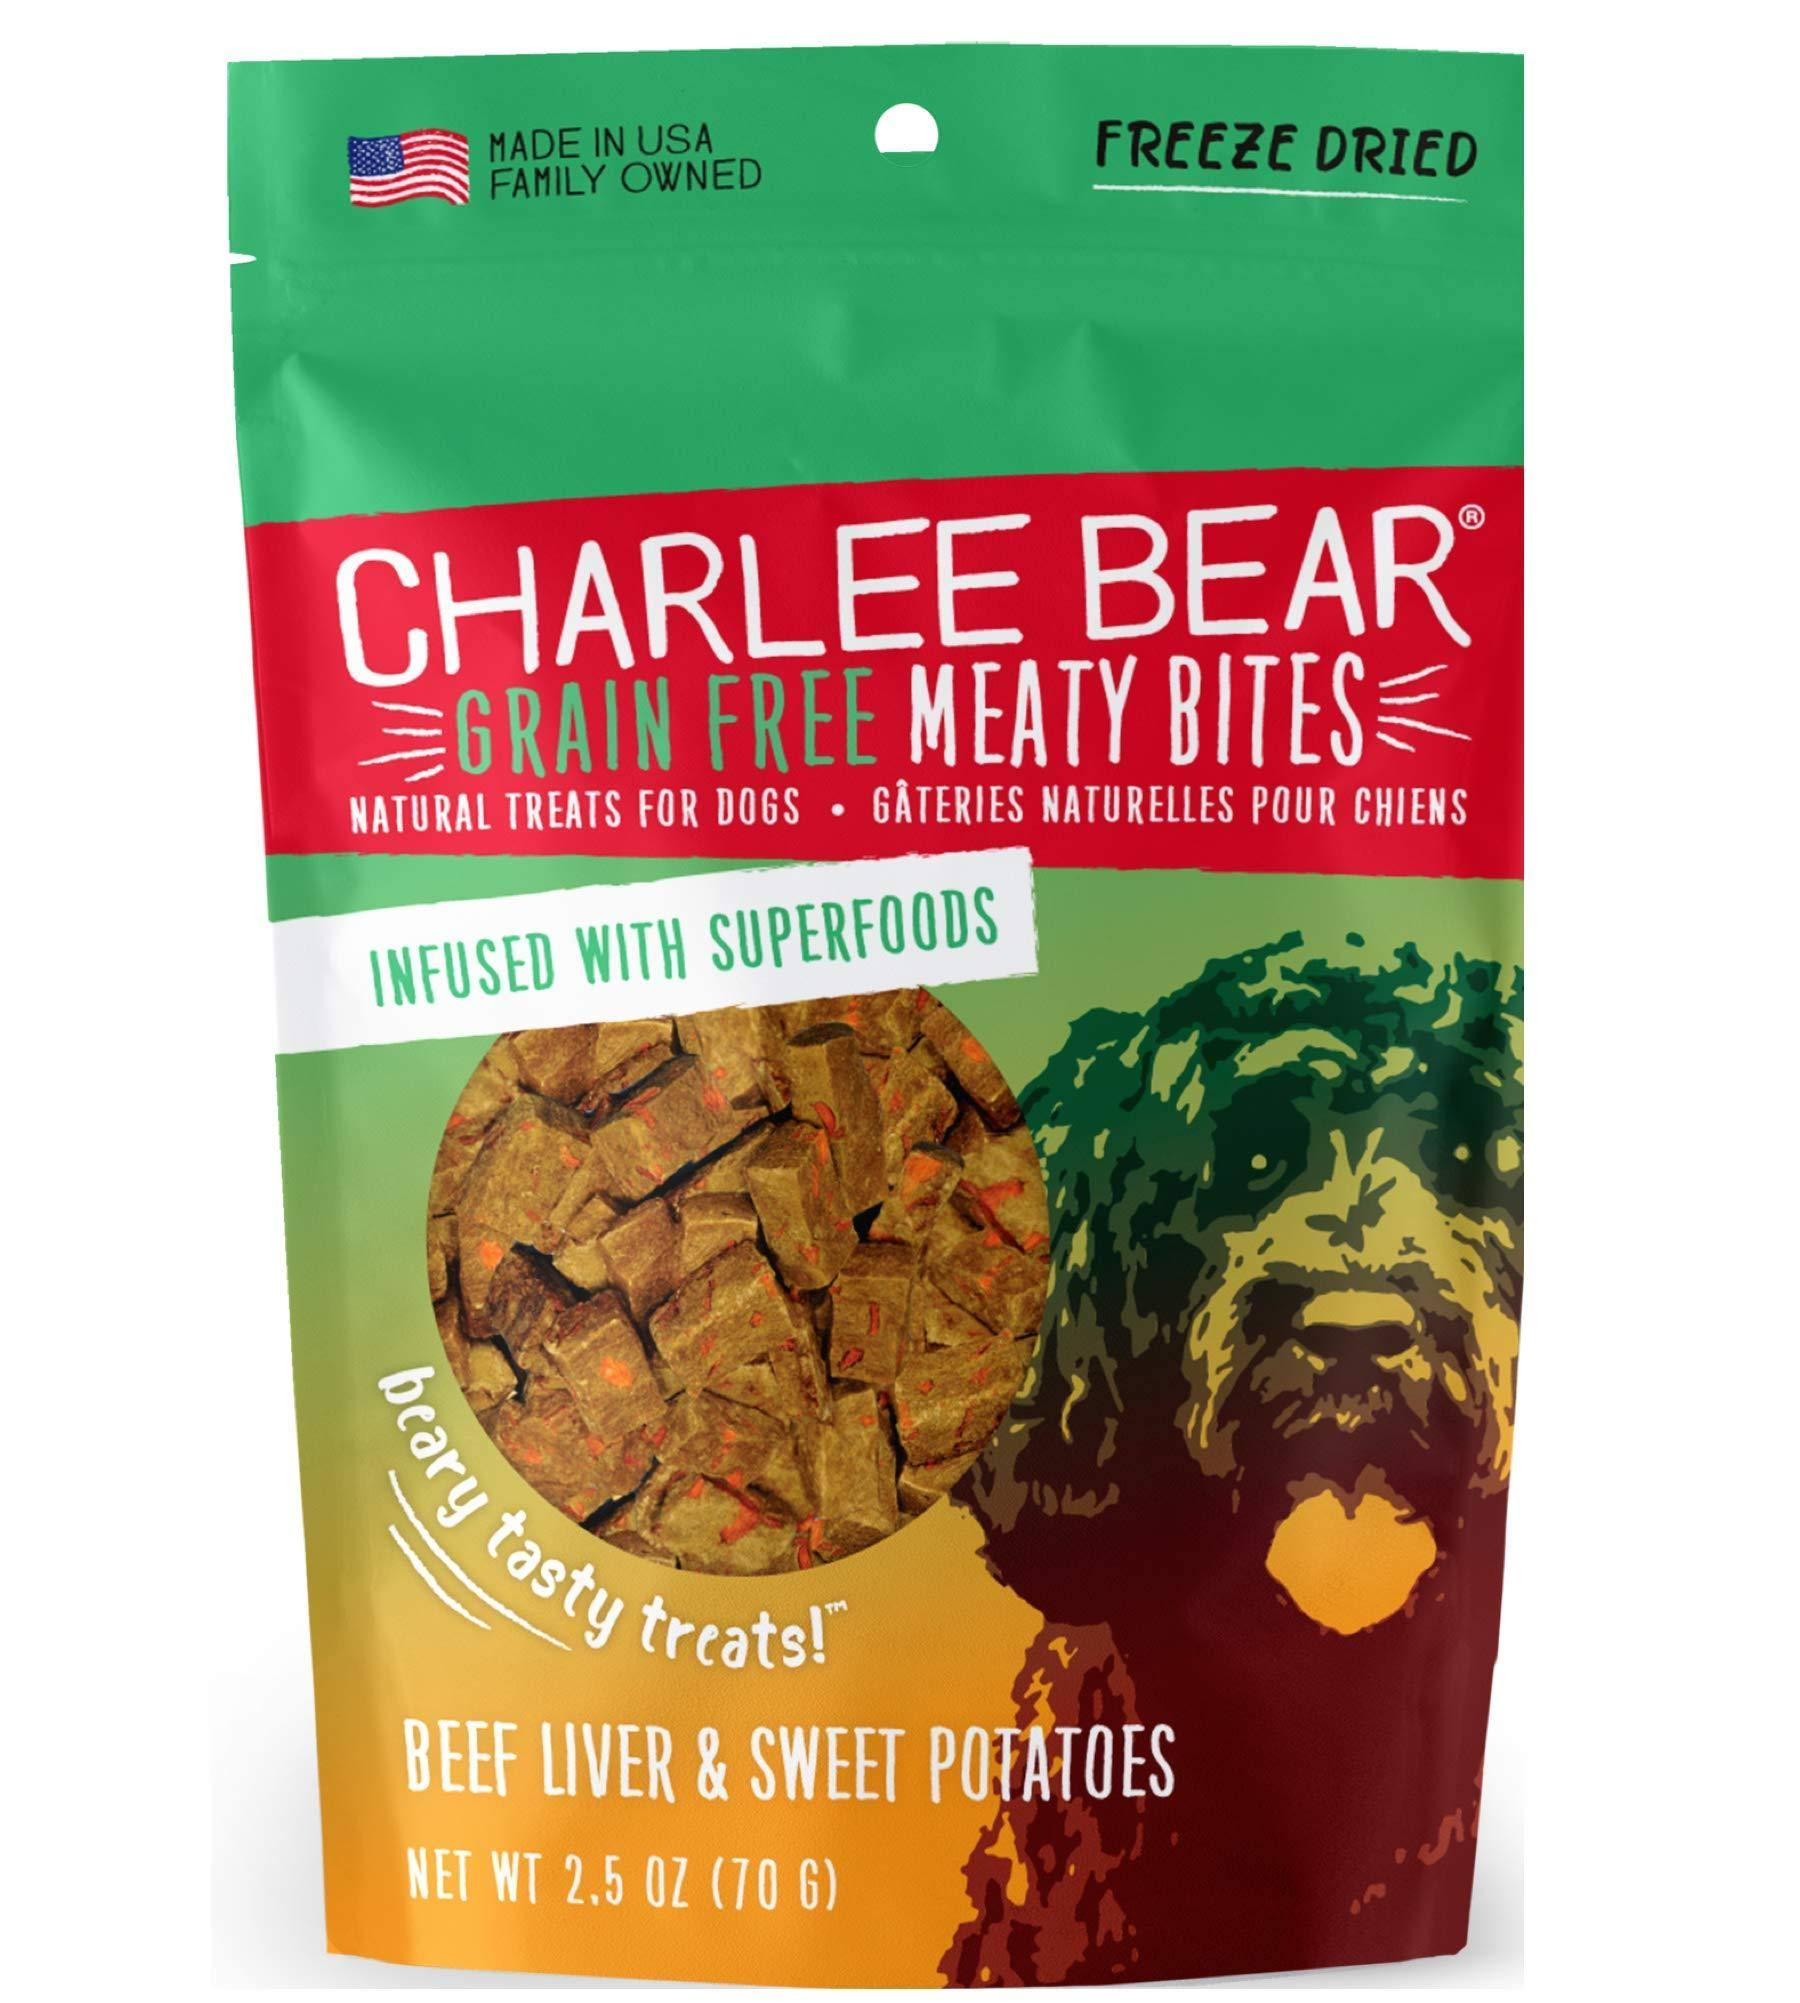 Charlee Bear Meaty Bites Beef Liver Sweet Potatoes Dog Treats, 2.5 oz